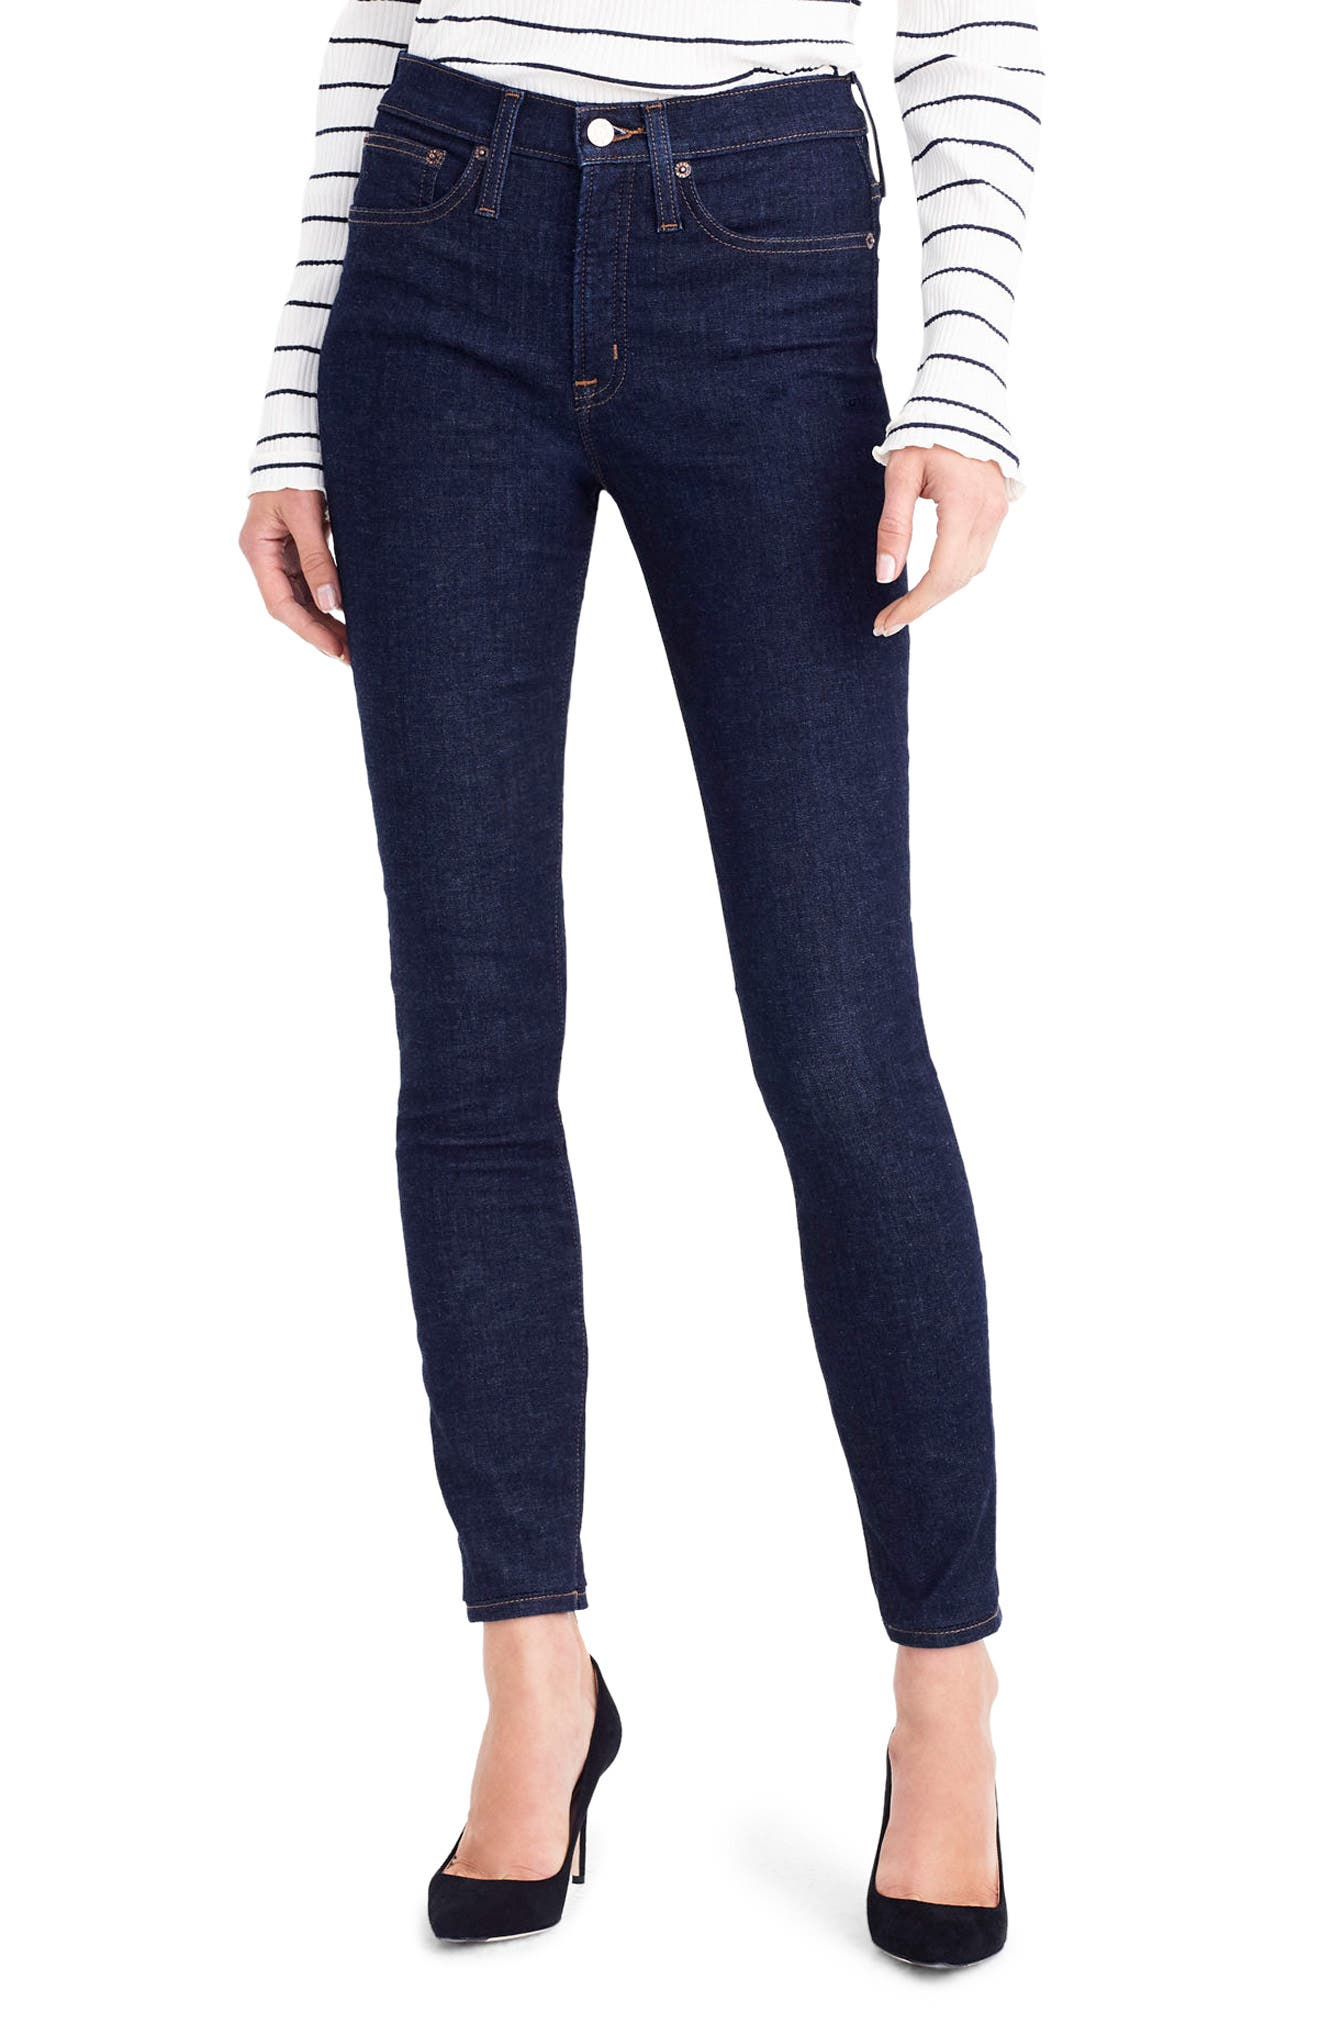 Alternate Image 1 Selected - J.Crew Toothpick High Rise Jeans (Classic Rinse)